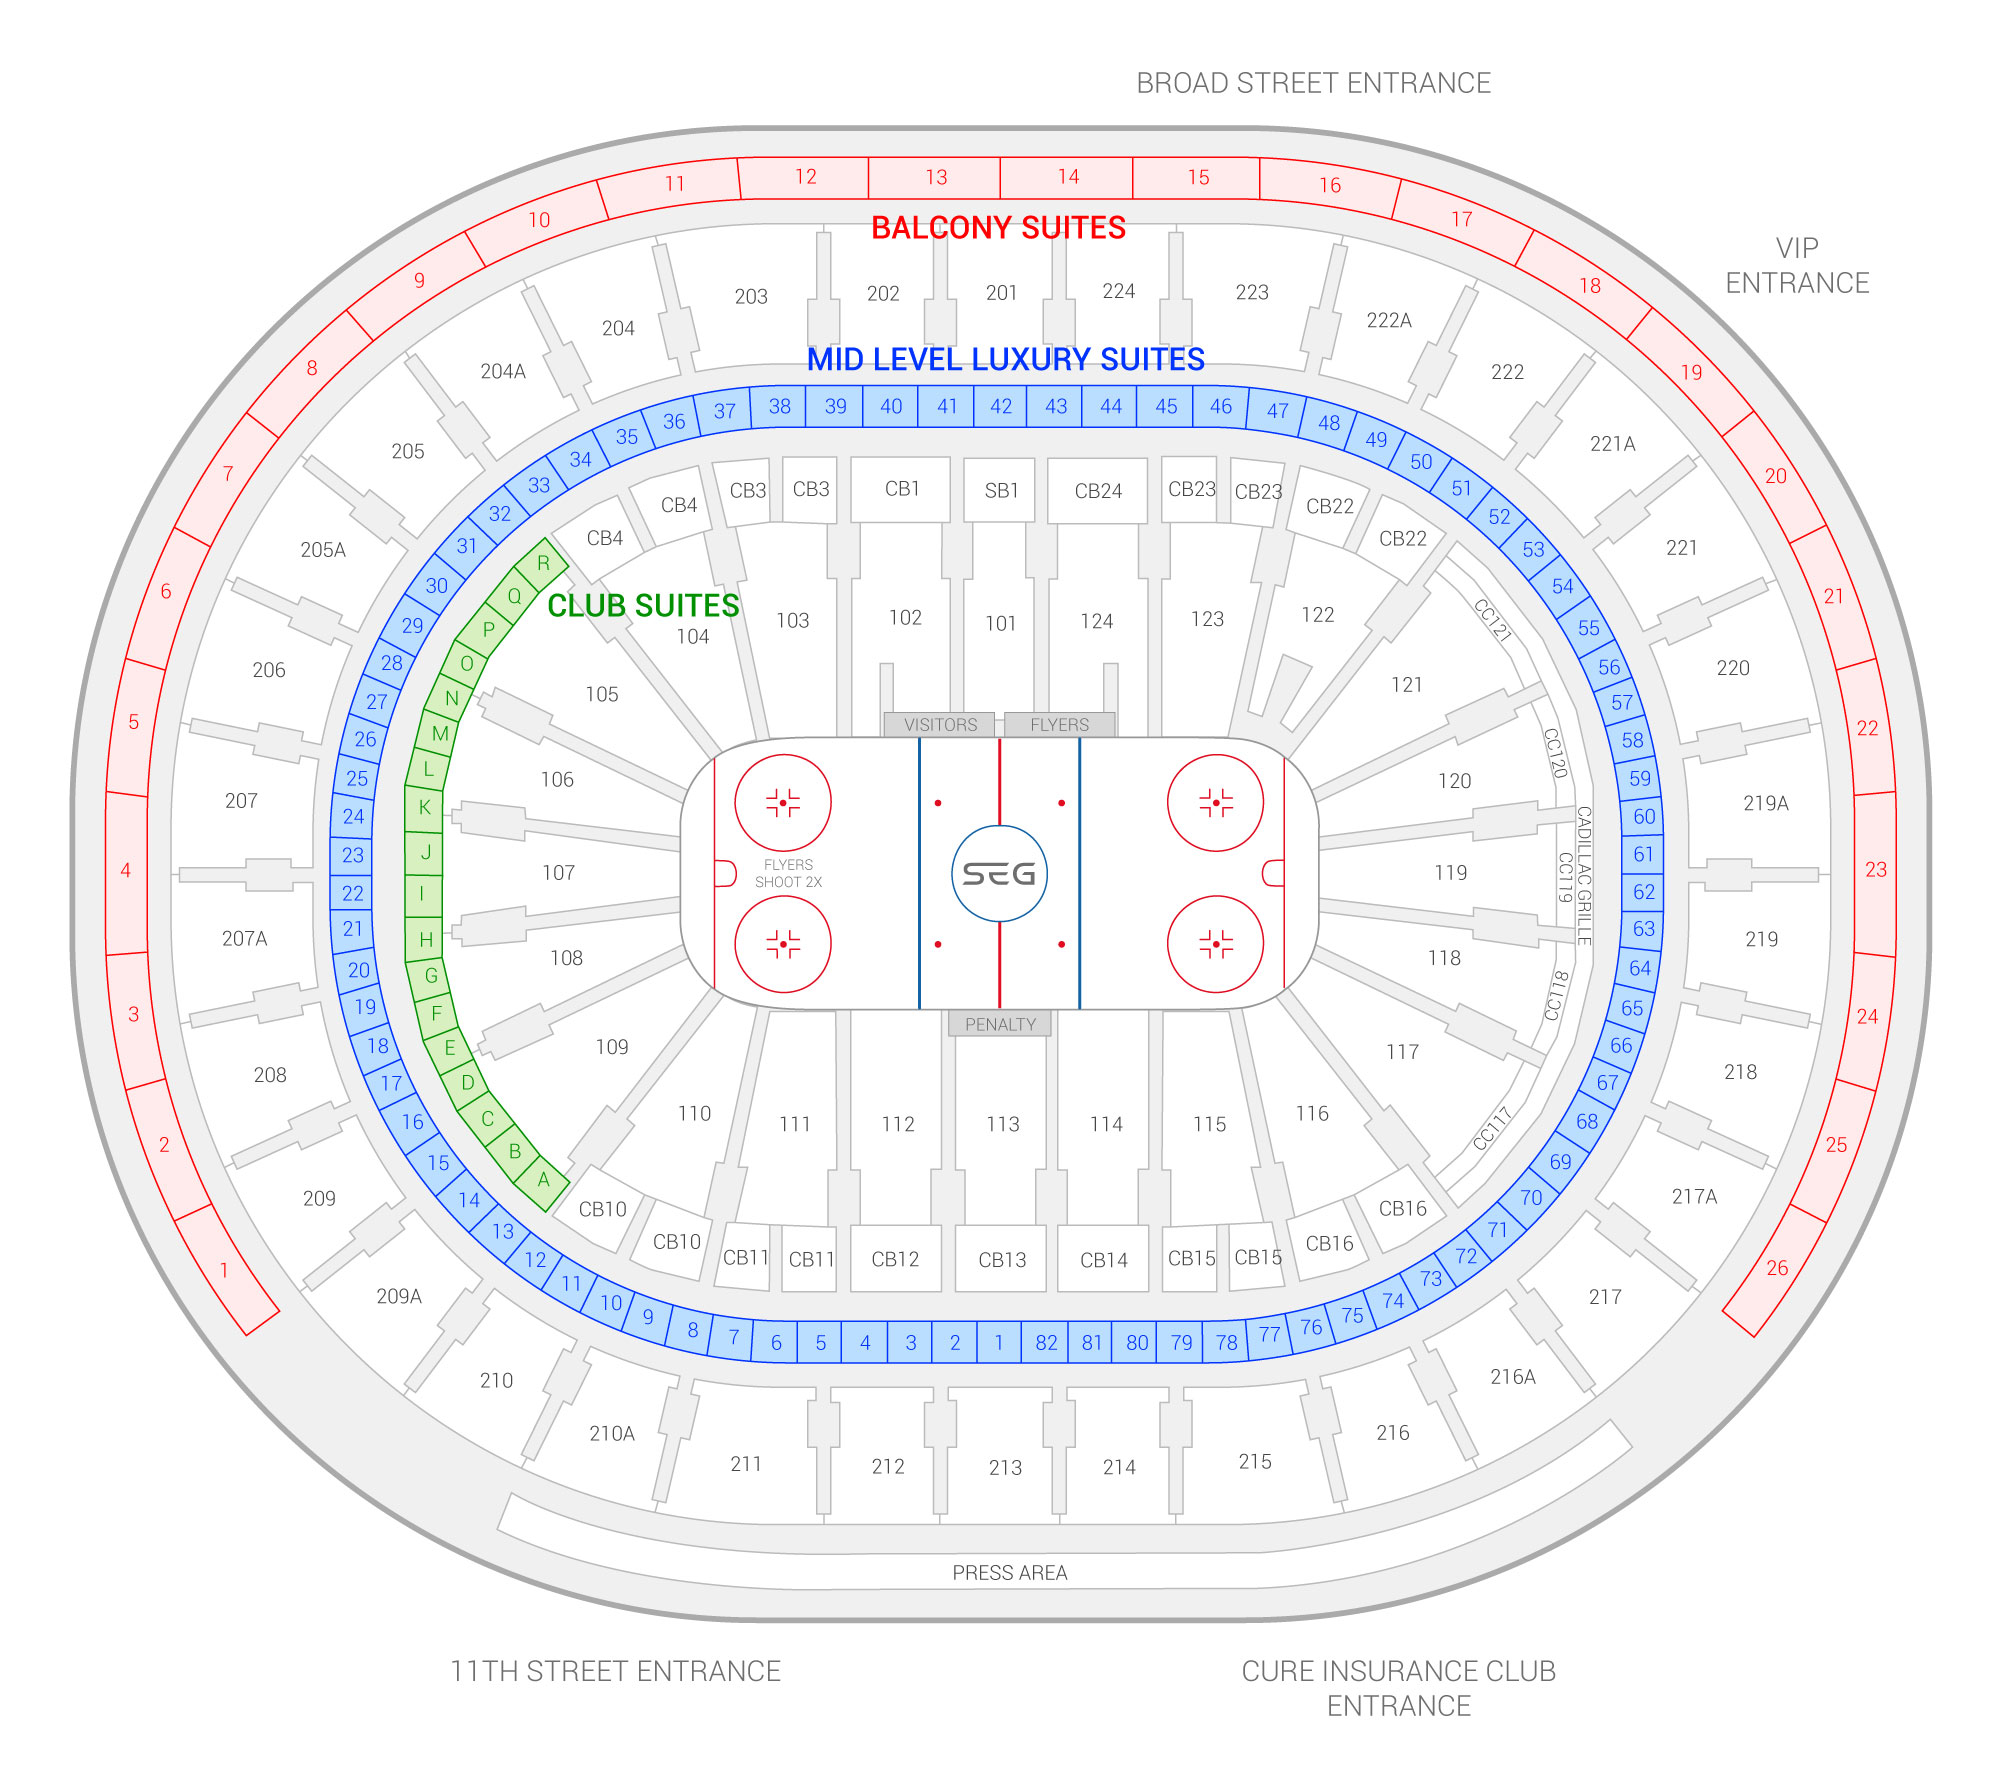 Wells Fargo Center / Philadelphia Flyers Suite Map and Seating Chart